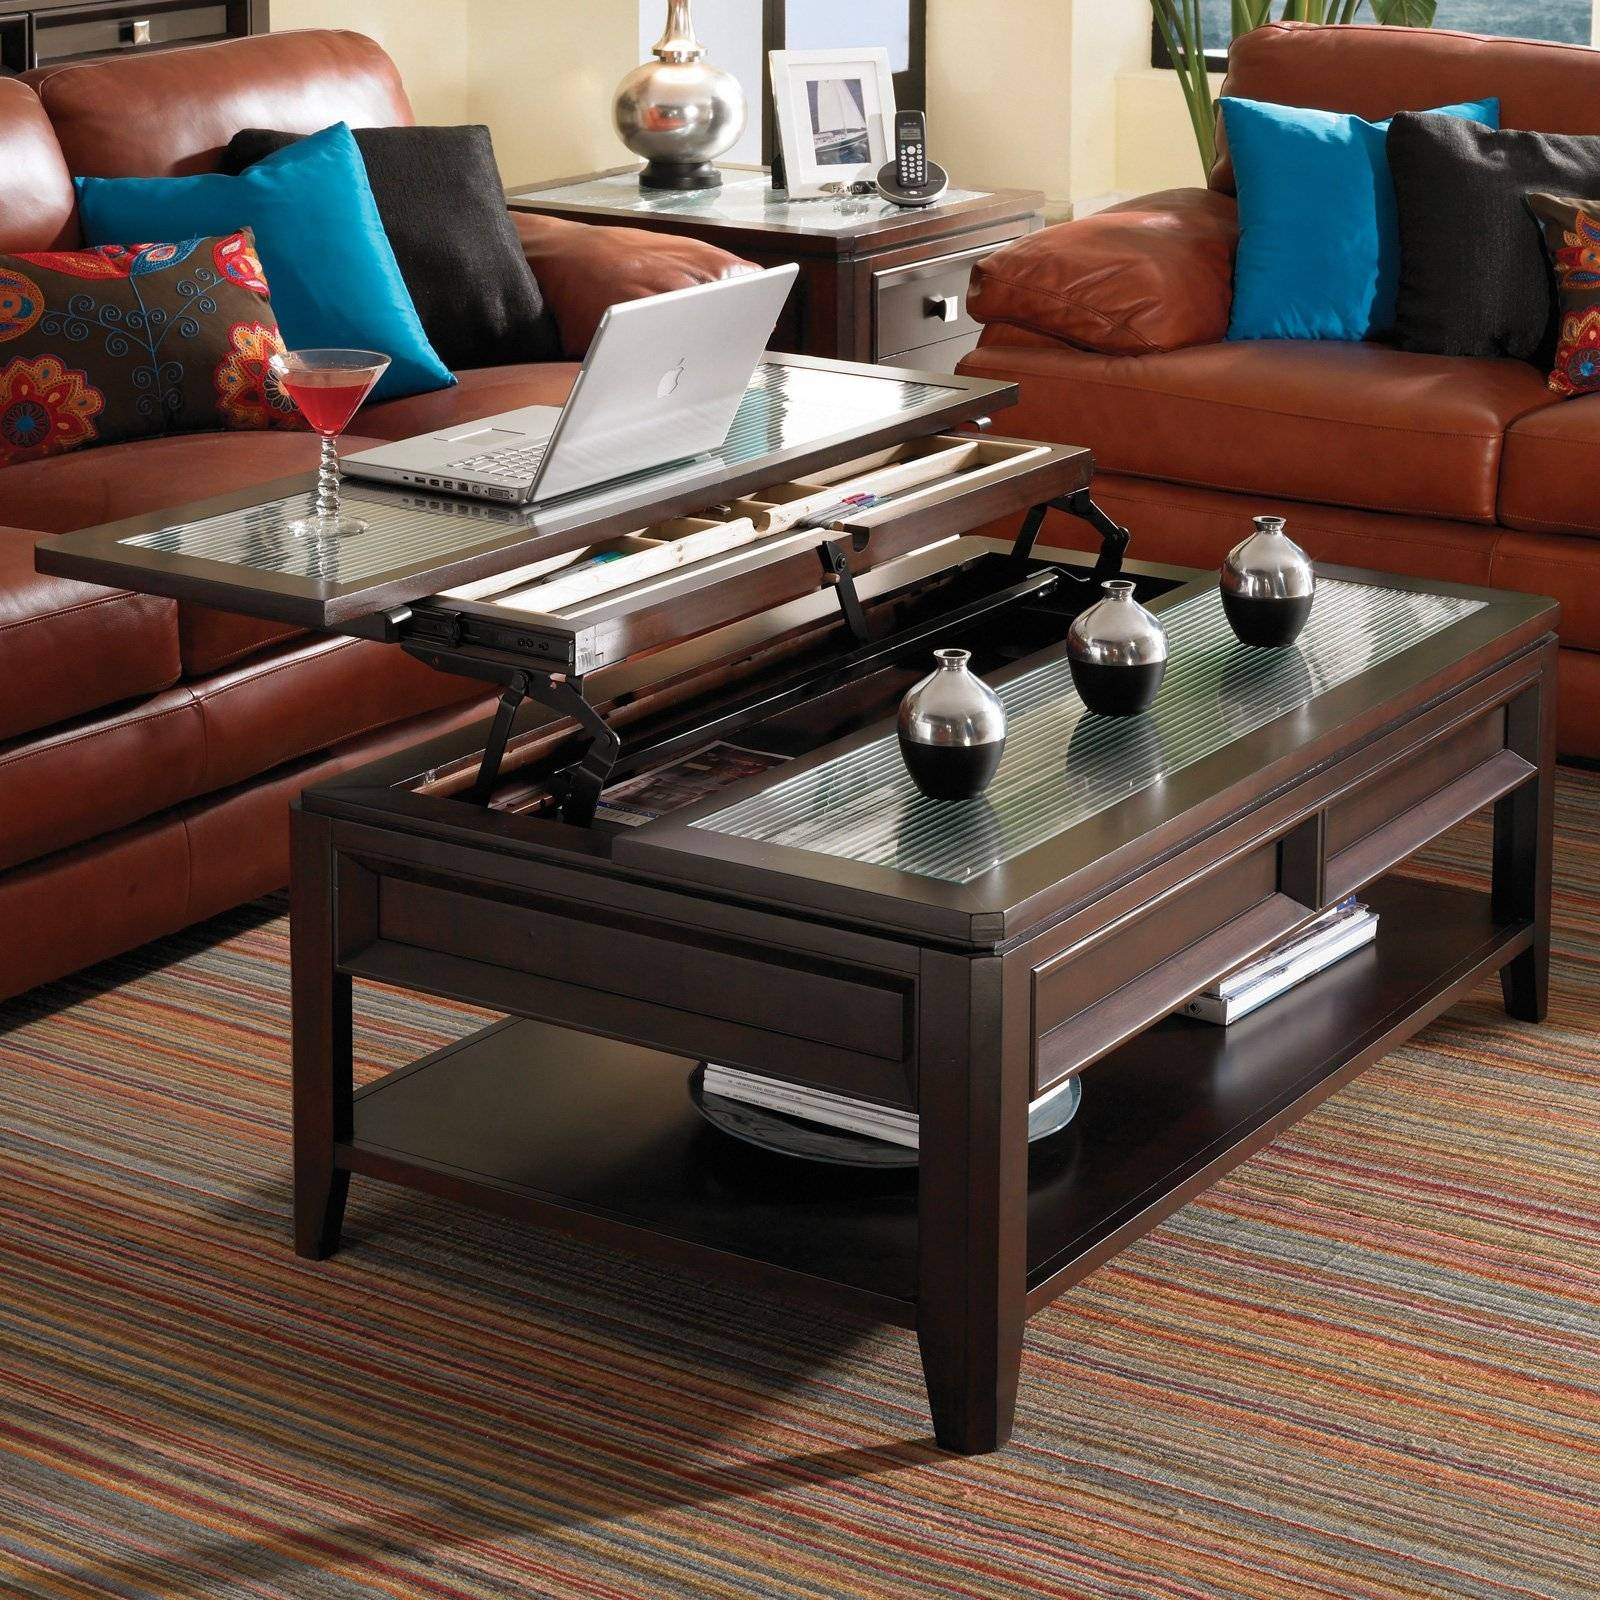 Black Coffee Table With Lift Up Top | Coffee Tables Decoration With Regard To Coffee Tables With Lift Up Top (View 6 of 30)